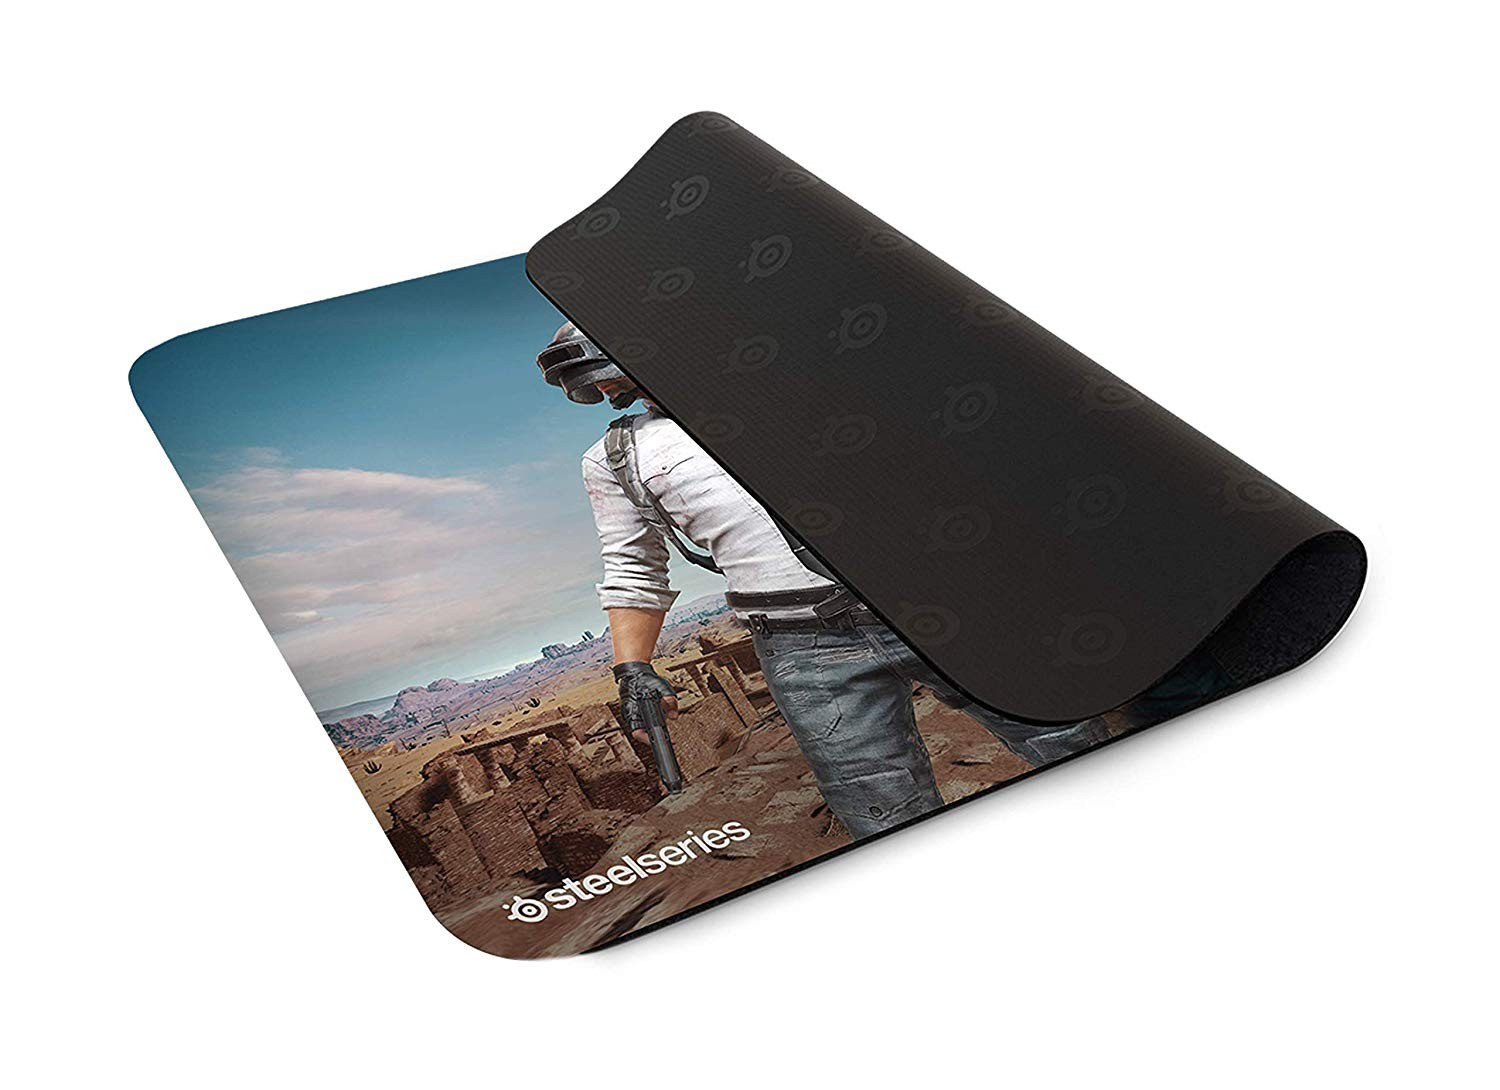 Steelseries Qck+ PUBG Miramar Edition  450x400x4mm gaming mousepad